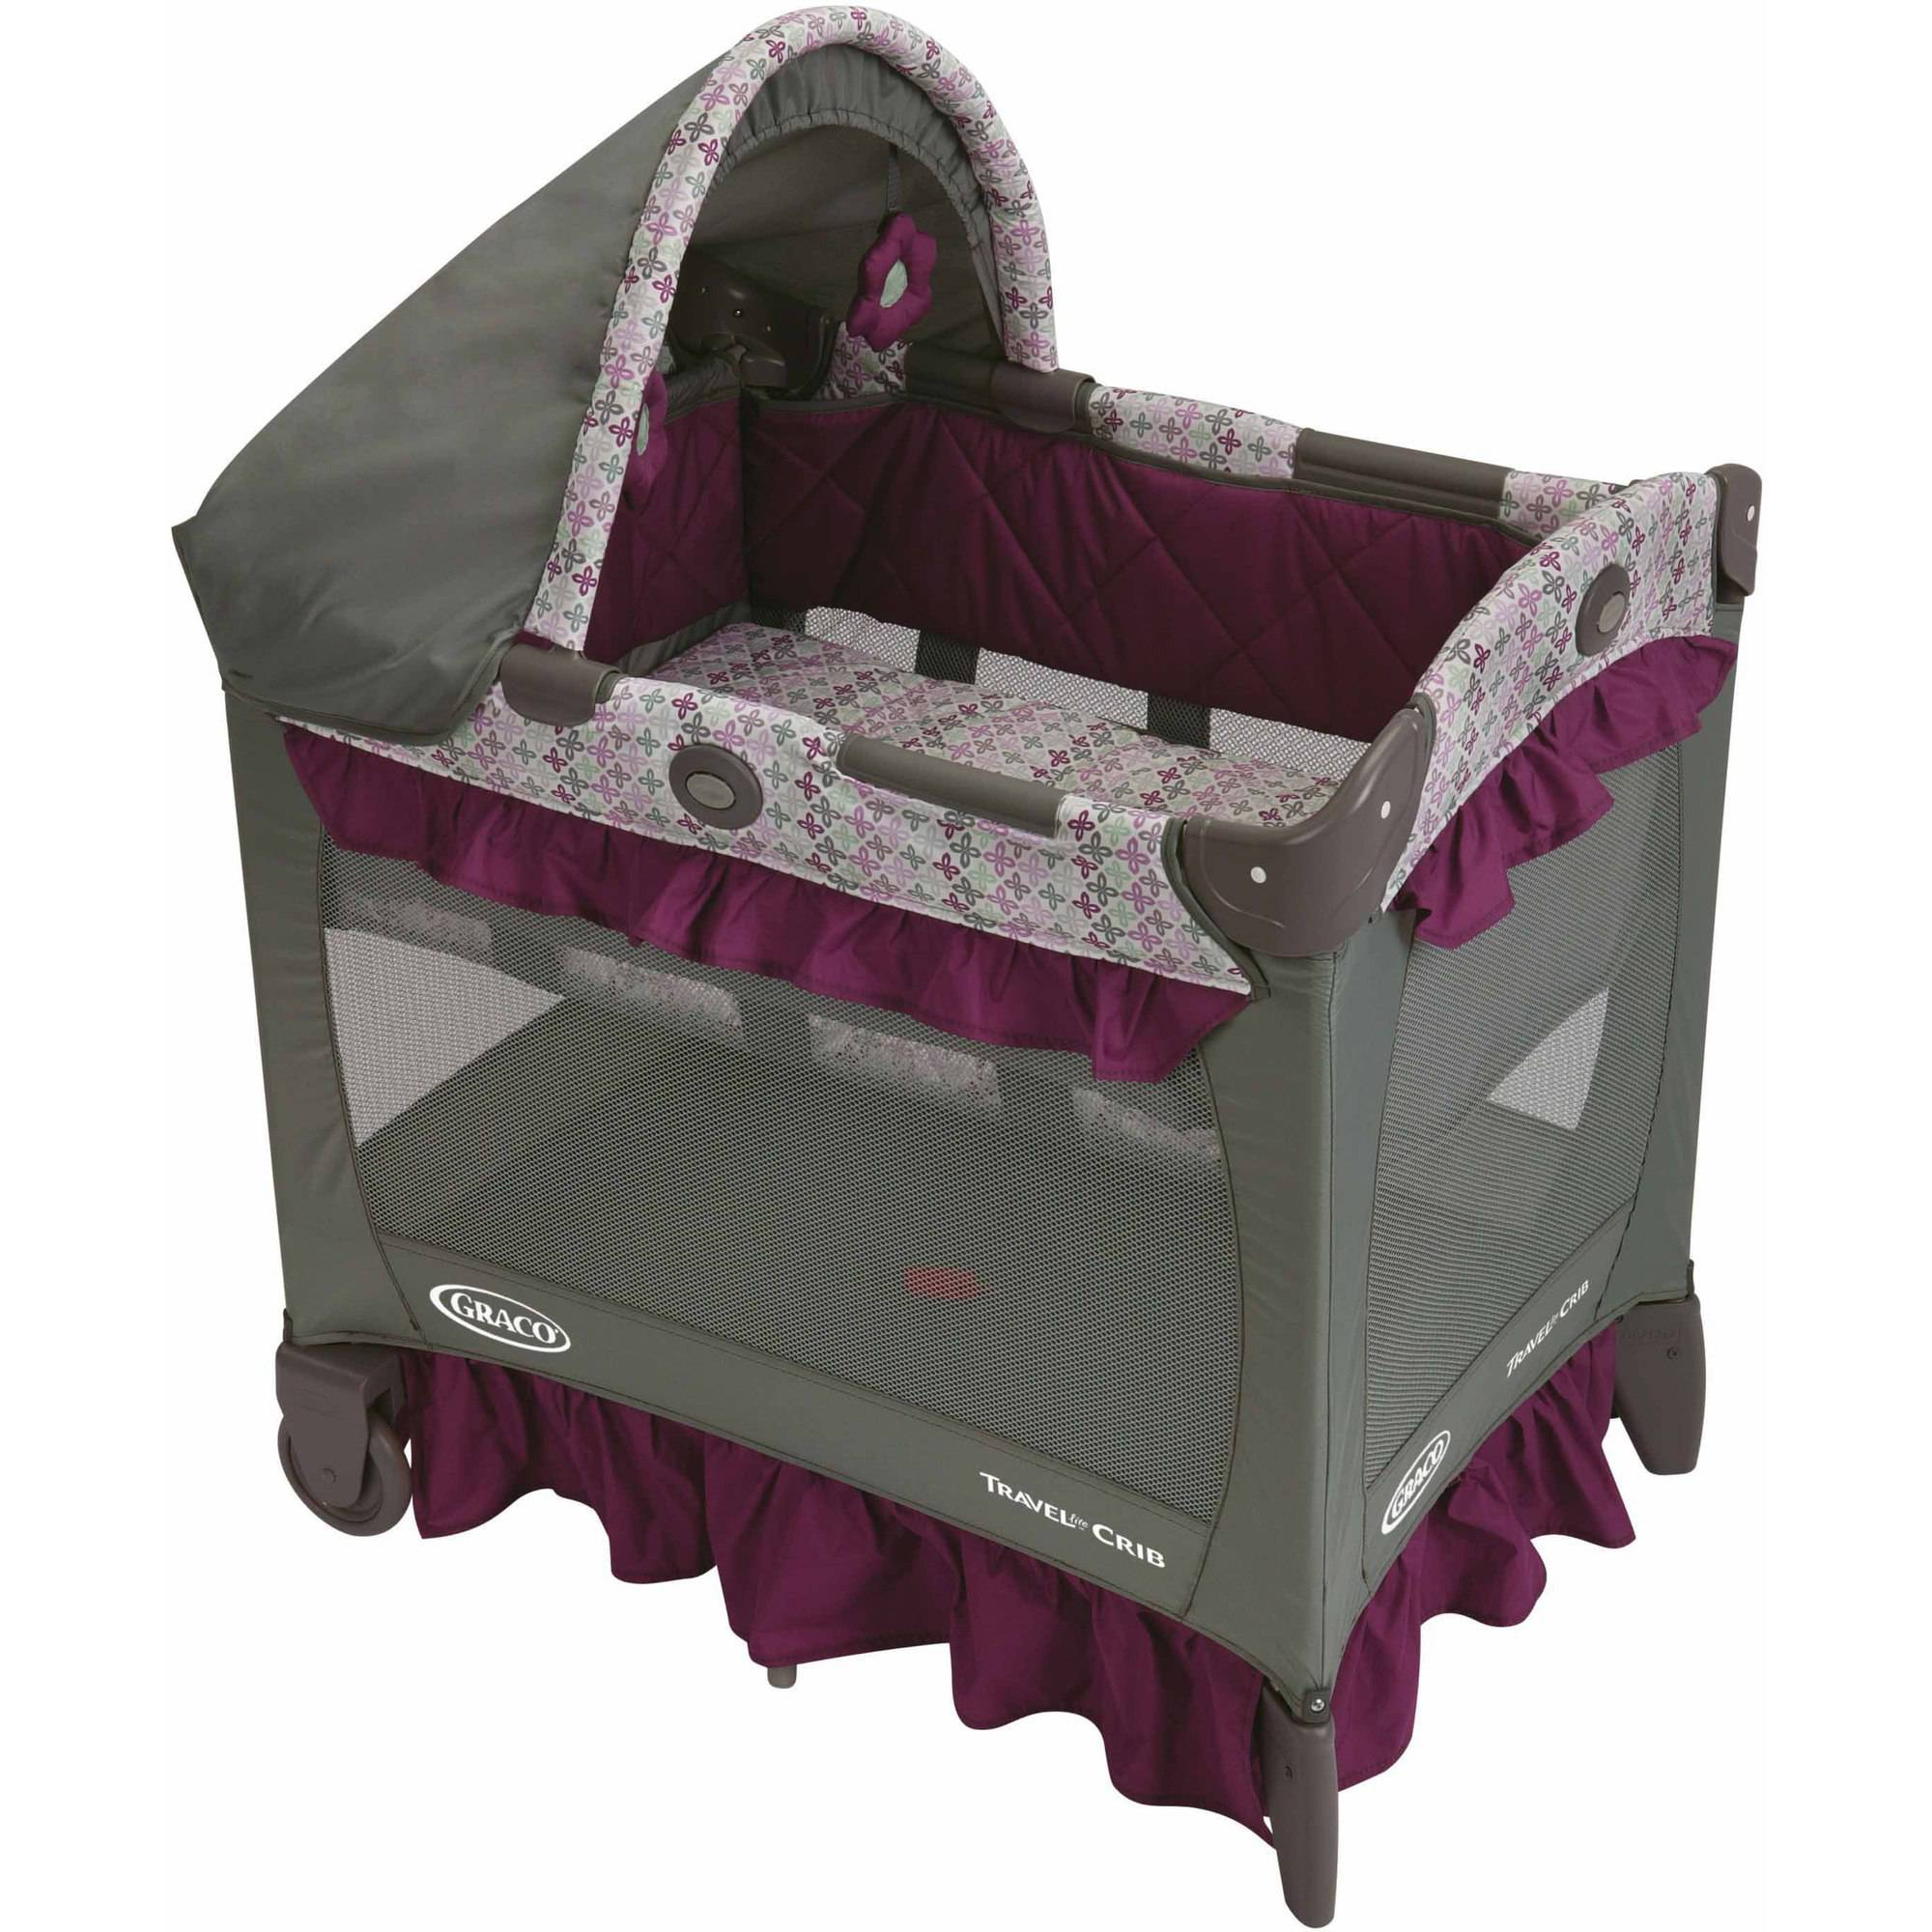 Graco Travel Lite Portable Crib, Nyssa